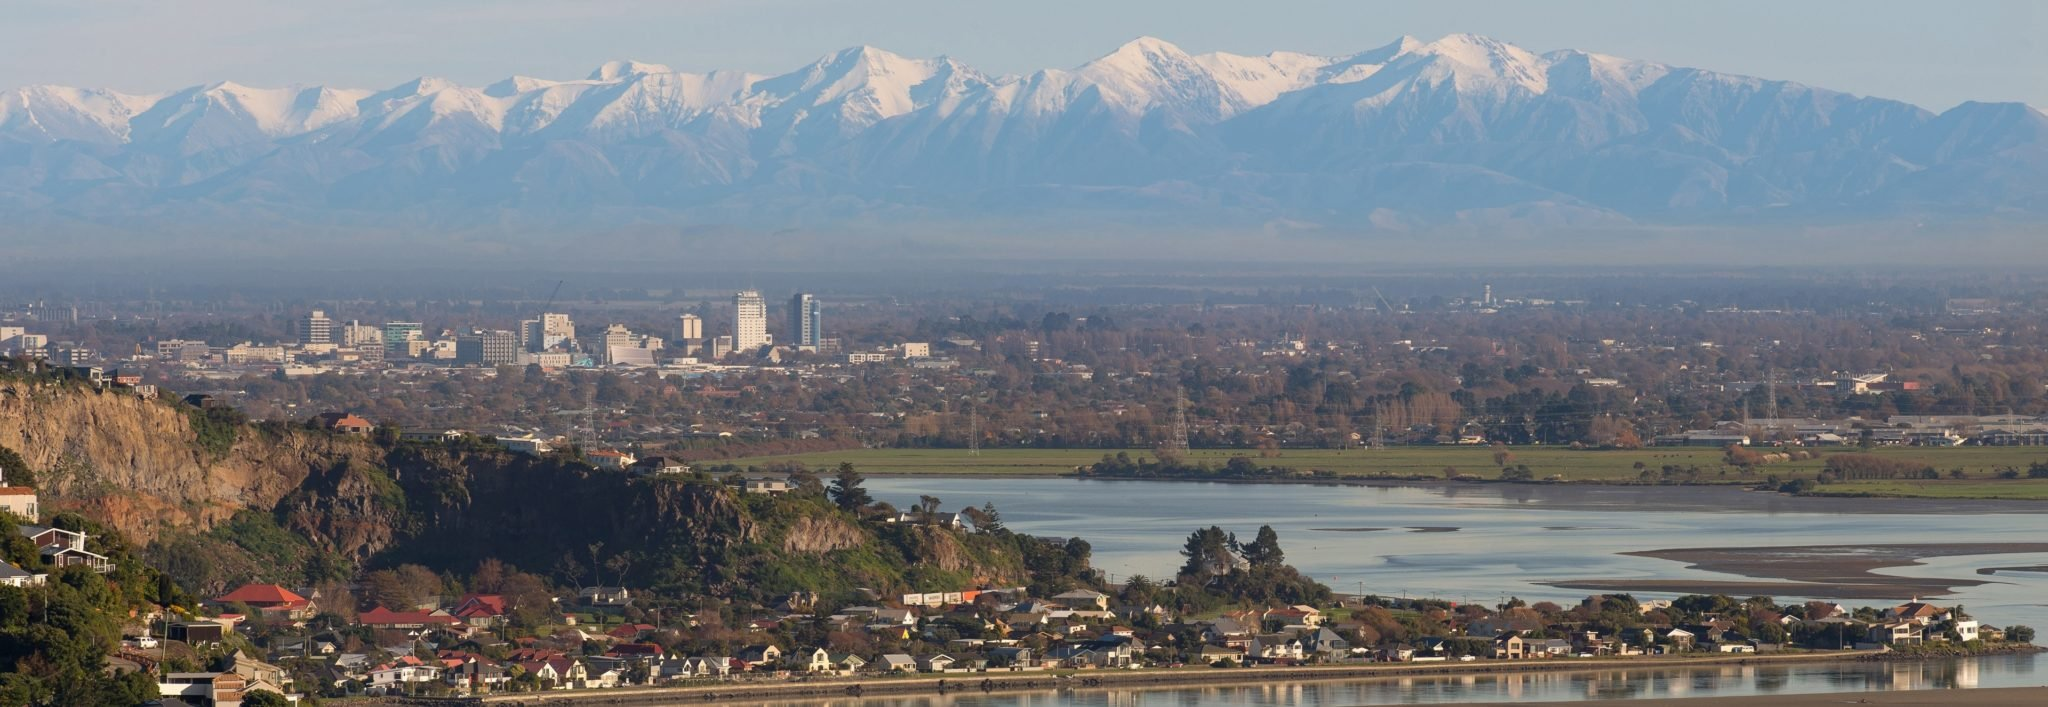 Christchurch with alps in back ground